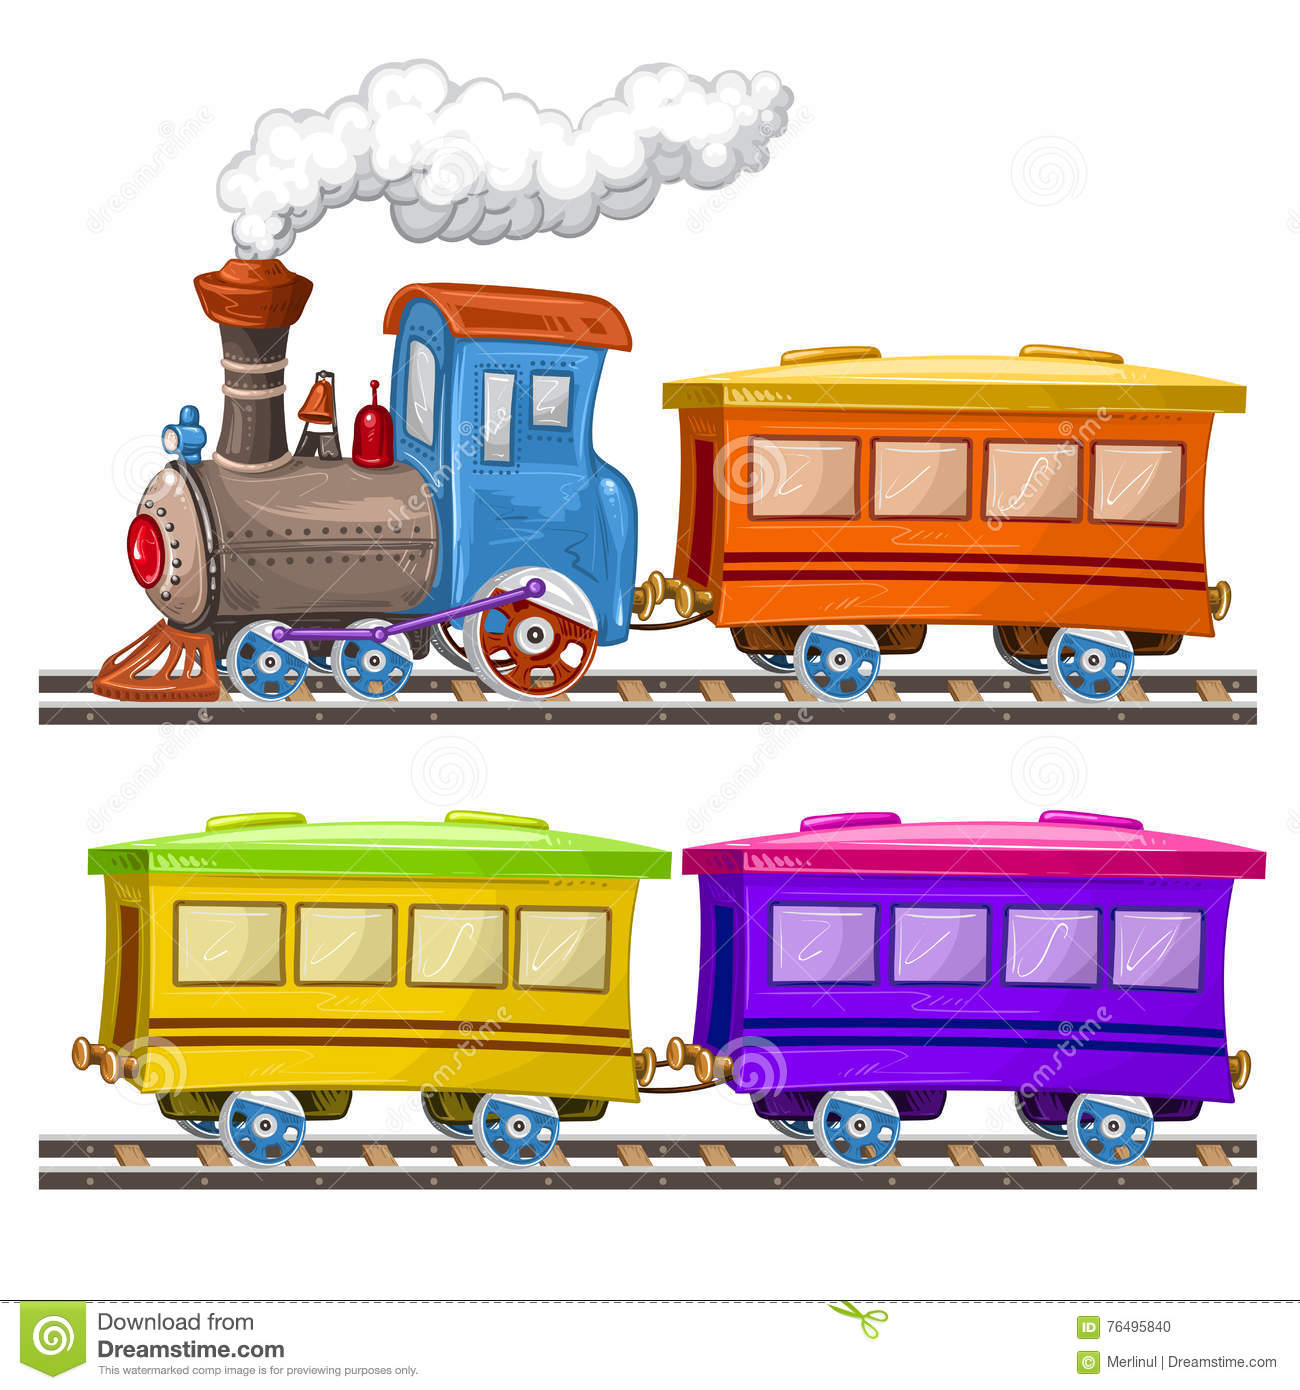 Color trains and wagons